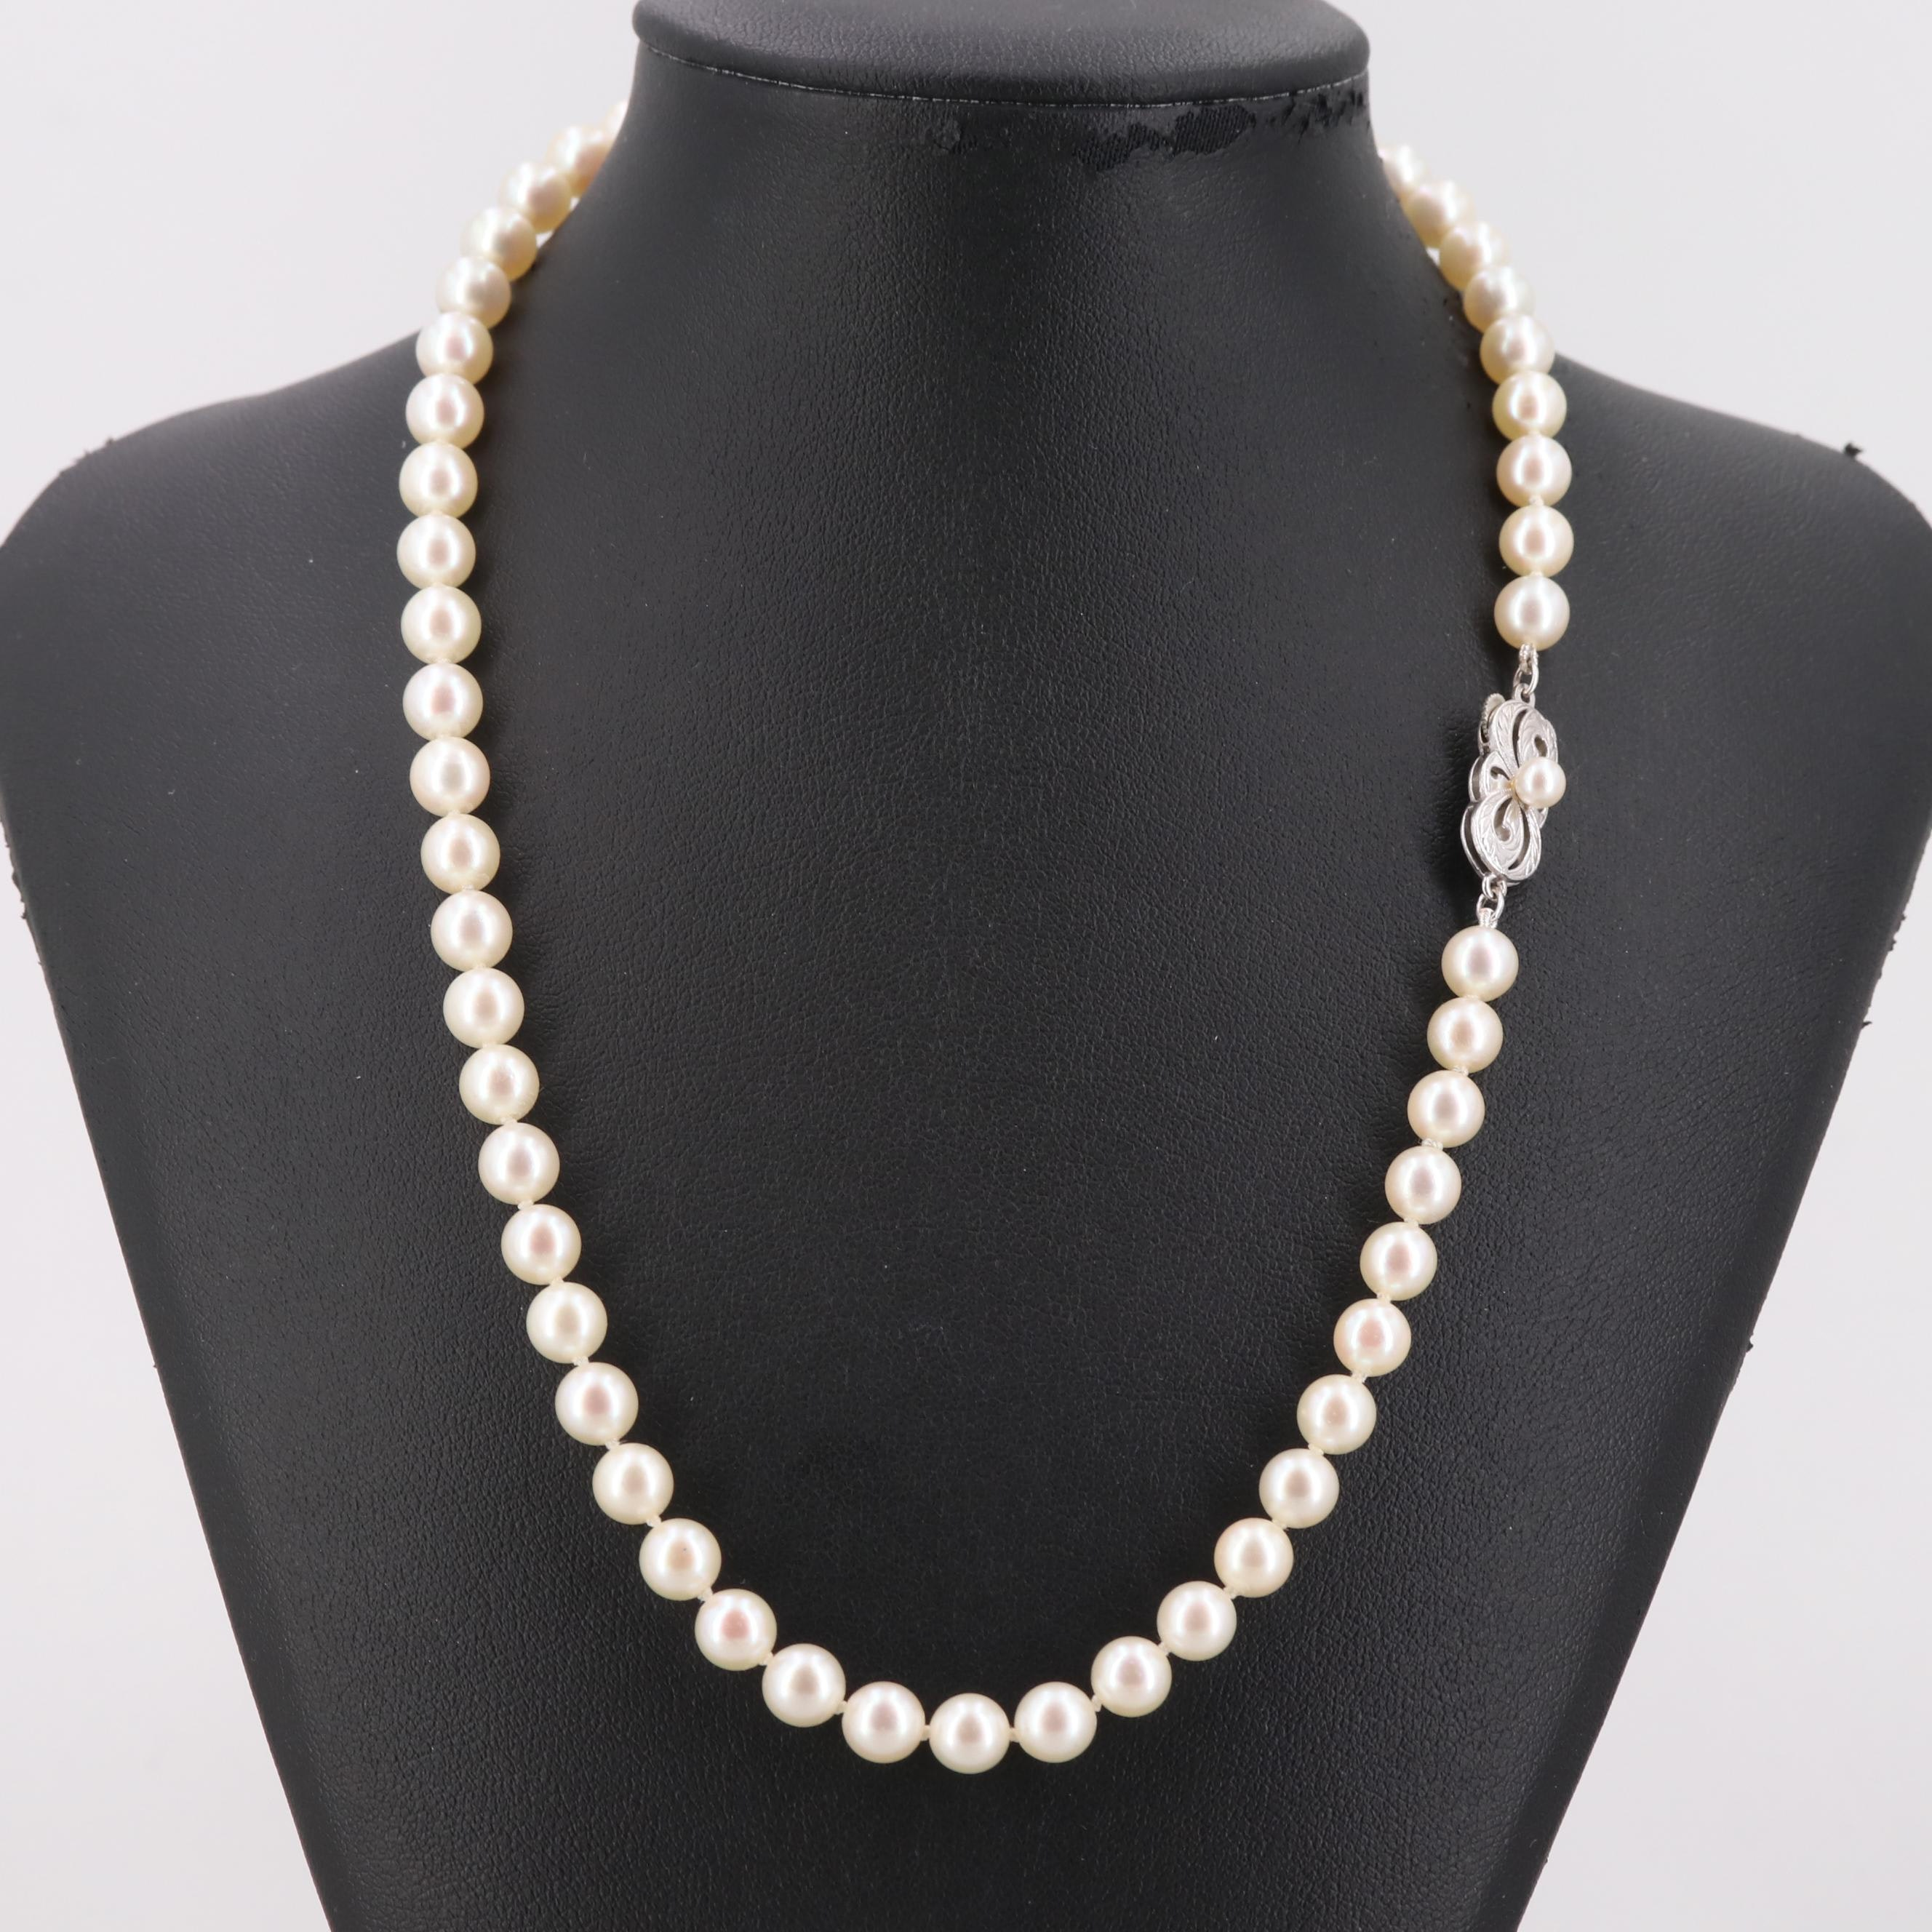 Vintage Mikimoto Cultured Pearl Bead Necklace with Sterling Silver